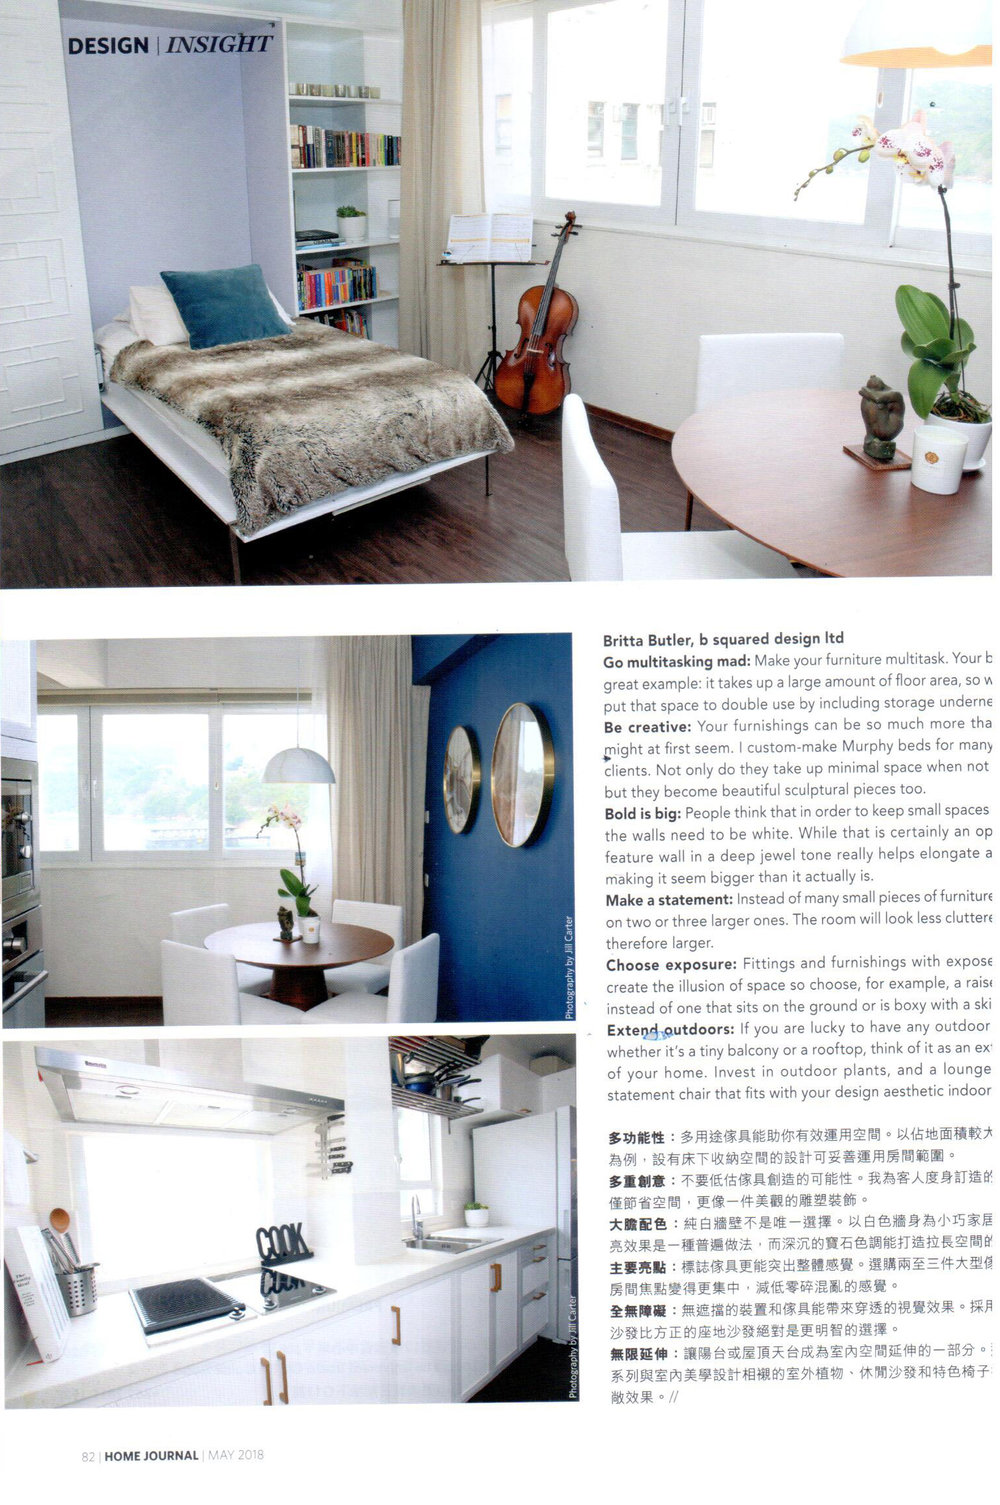 Home Journal Small Space article.jpg